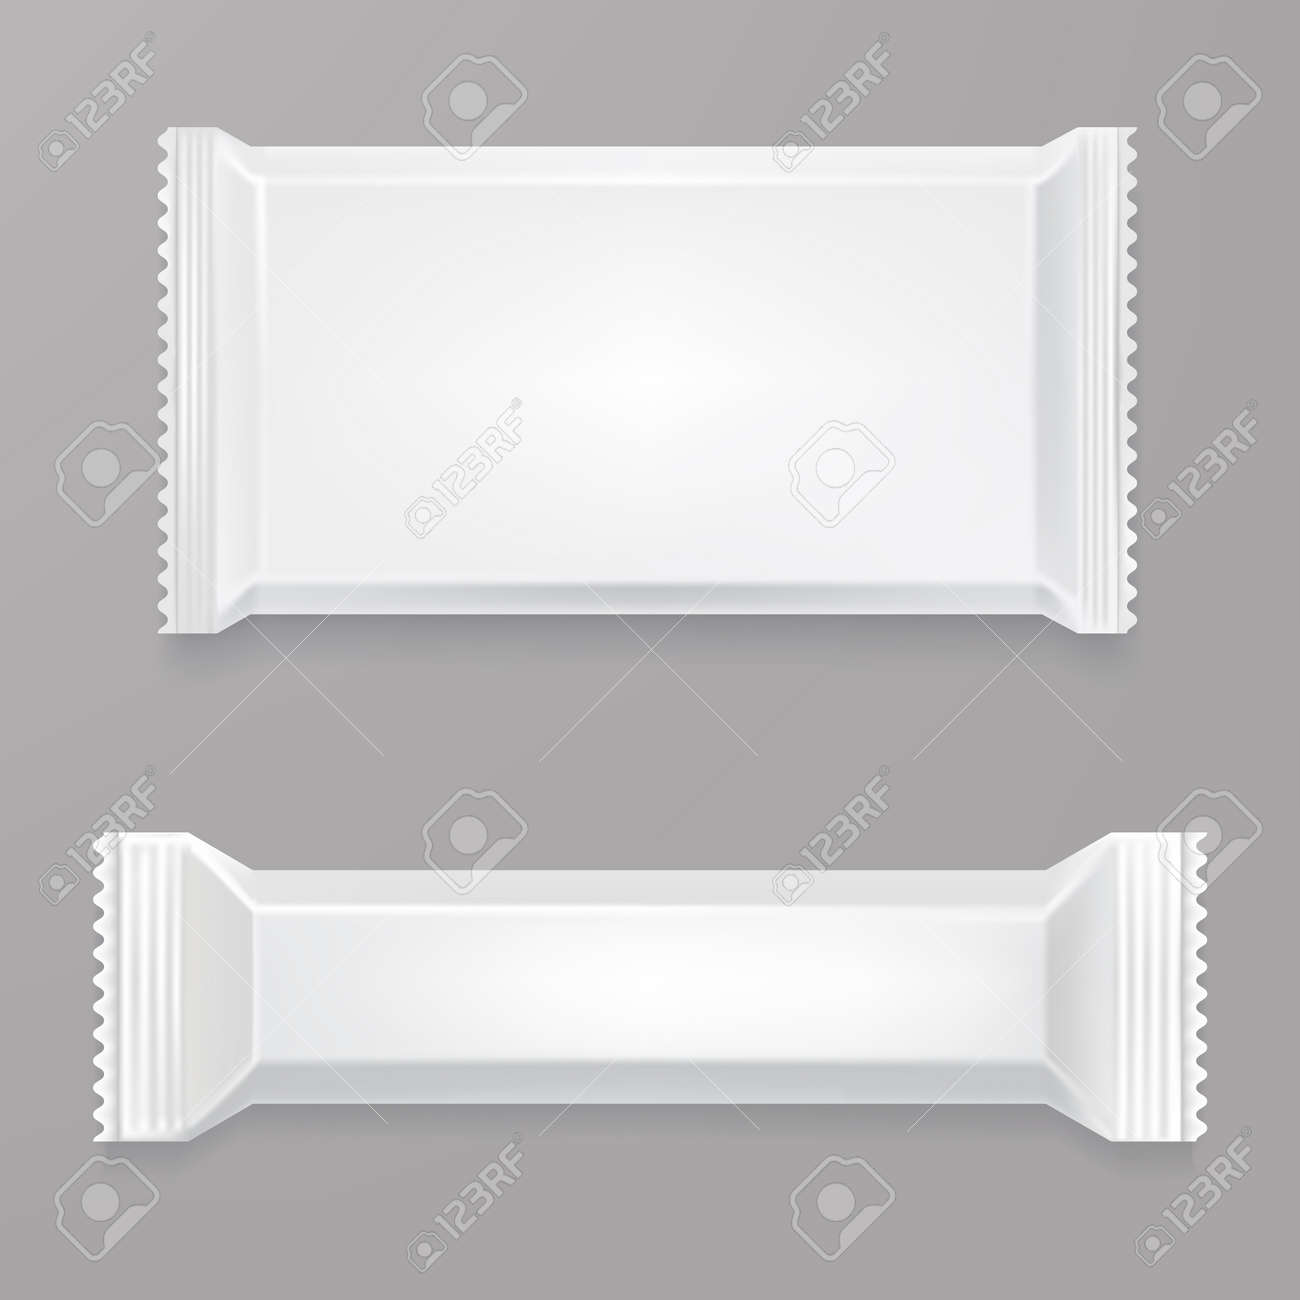 Blank Chocolate Bar Wrappers